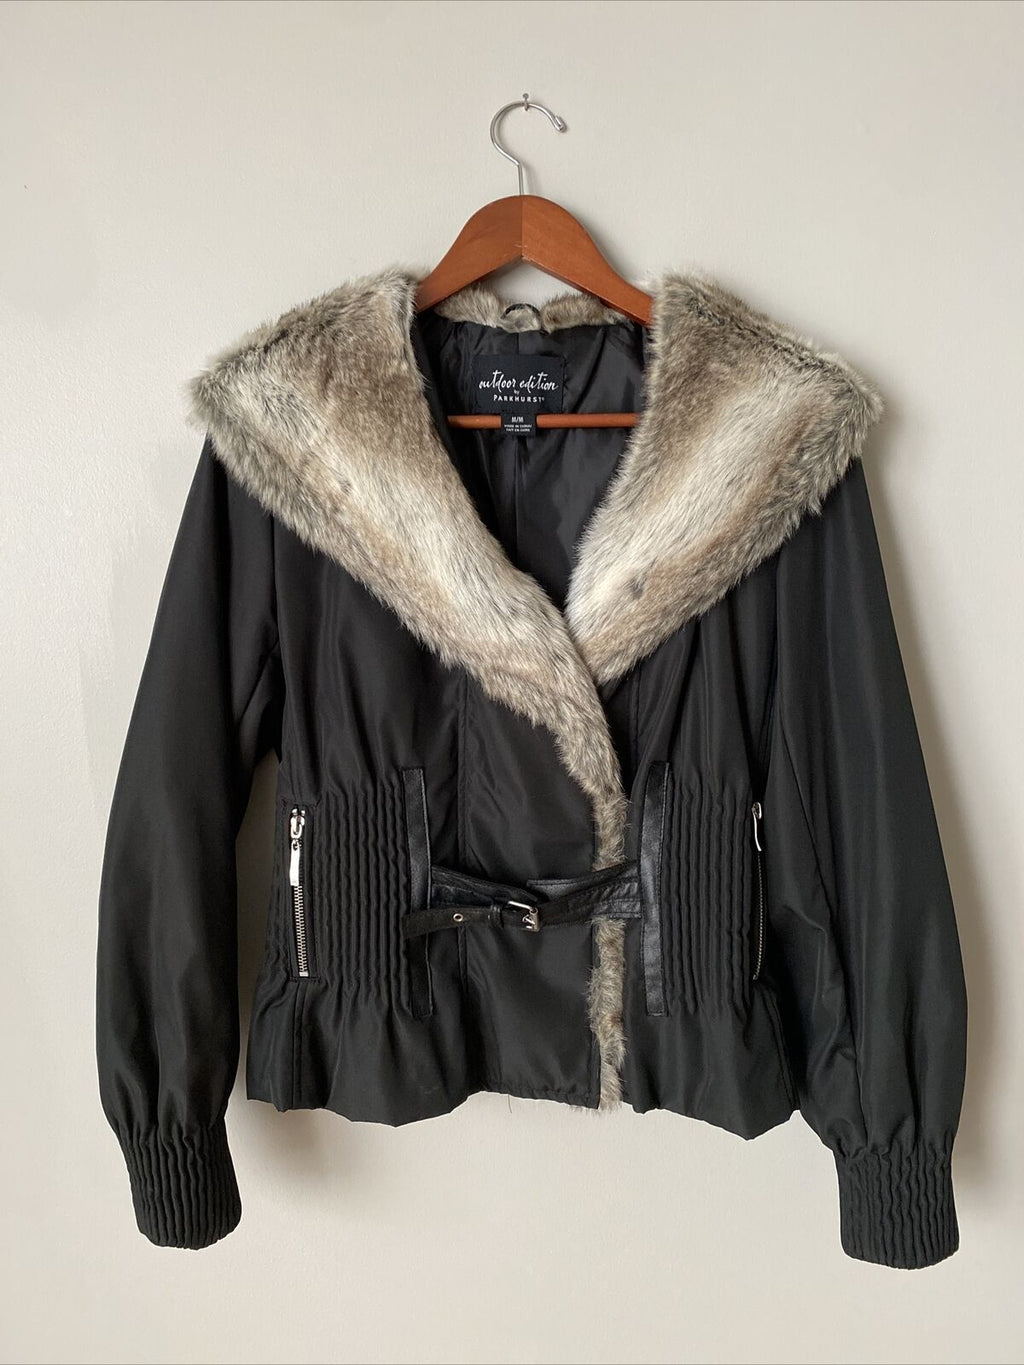 Outdoor Edition By Parkhurst Women's Size Medium Black Outdoor Jacket Faux Fur